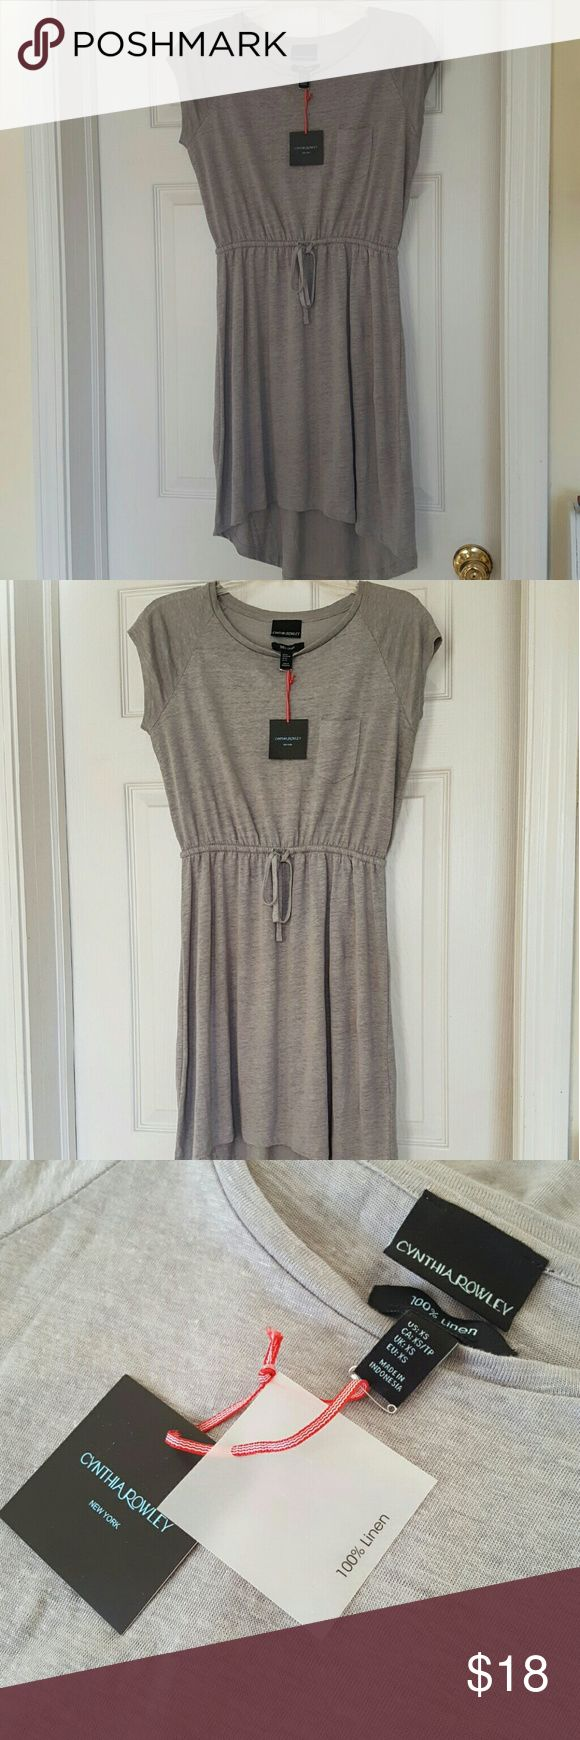 Cynthia Rowley gray linen summer dress, mid length New with tags, never worn 100% cotton, linen dress. Medium gray. Crew neck. Back hem is longer than front. Length from neckline to bottom front is 31 inches. Back hemline comes down to 37 inches. Draw string waist. Love it, but the length is longer than I prefer. Cynthia Rowley Dresses Midi